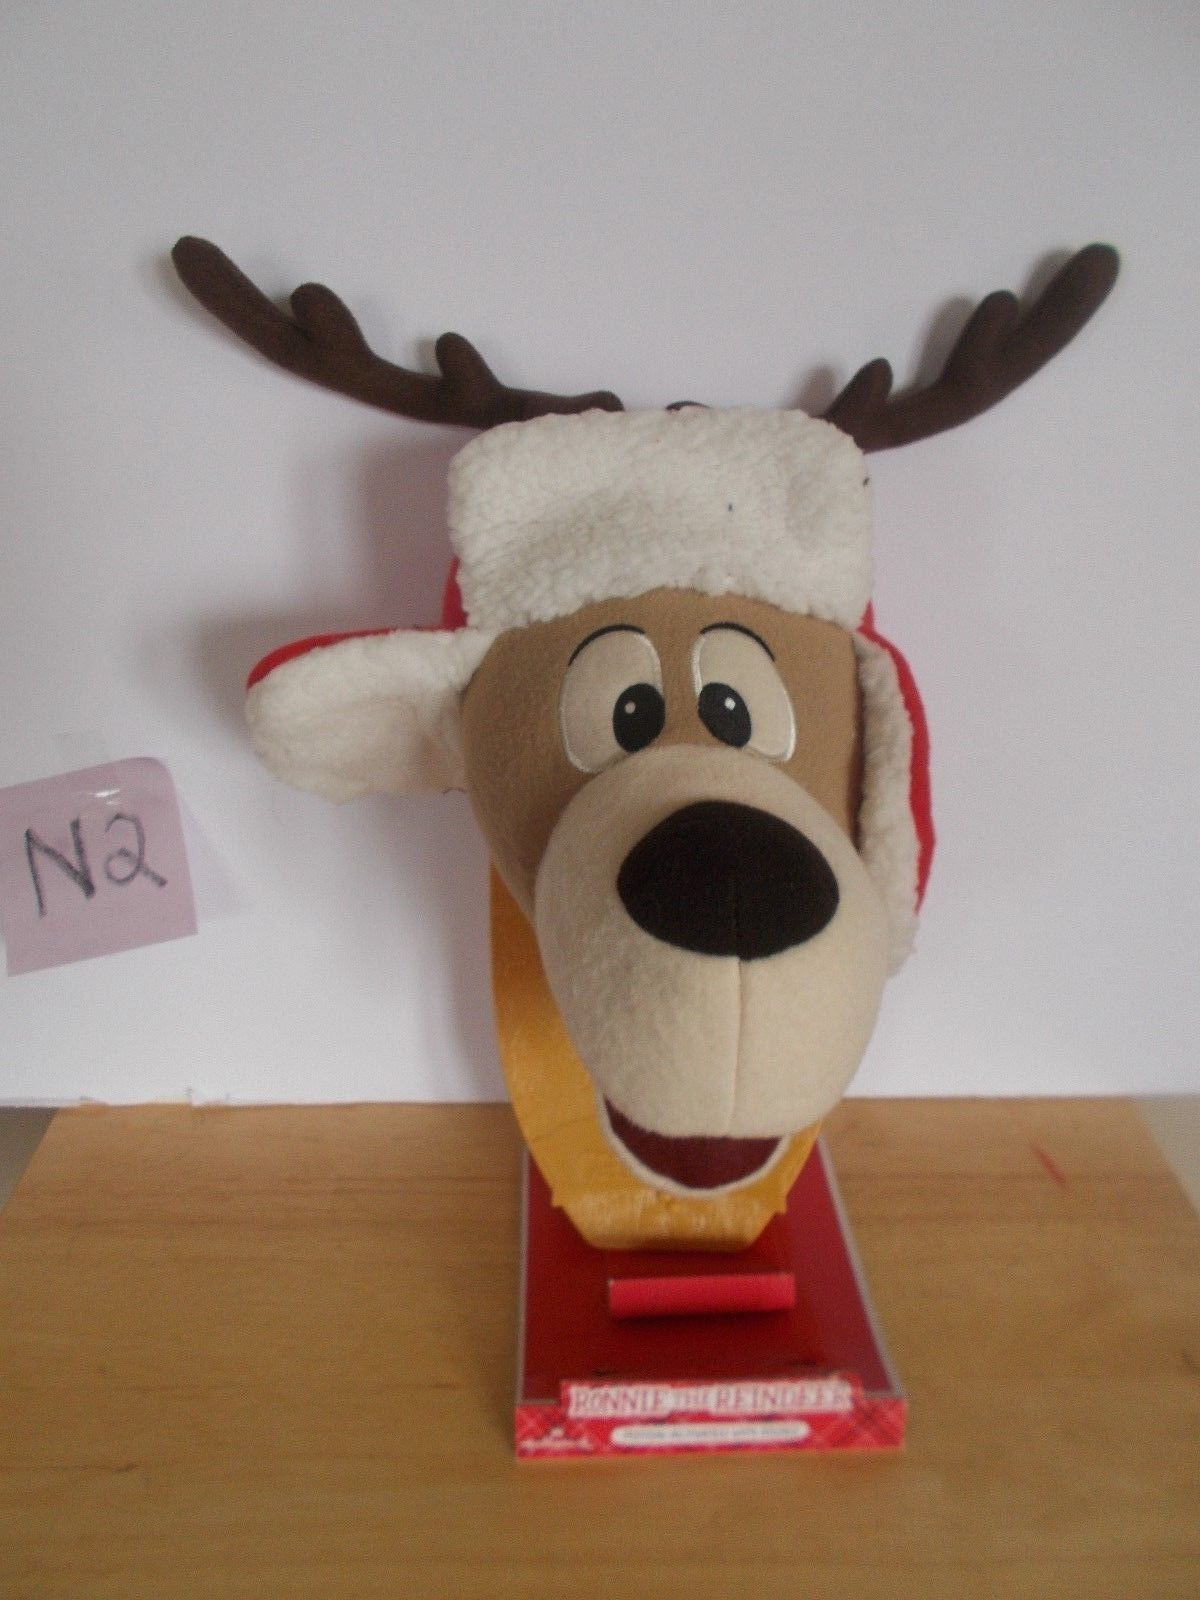 Hallmark Ronnie the REindeer Motion-Activated with Sound